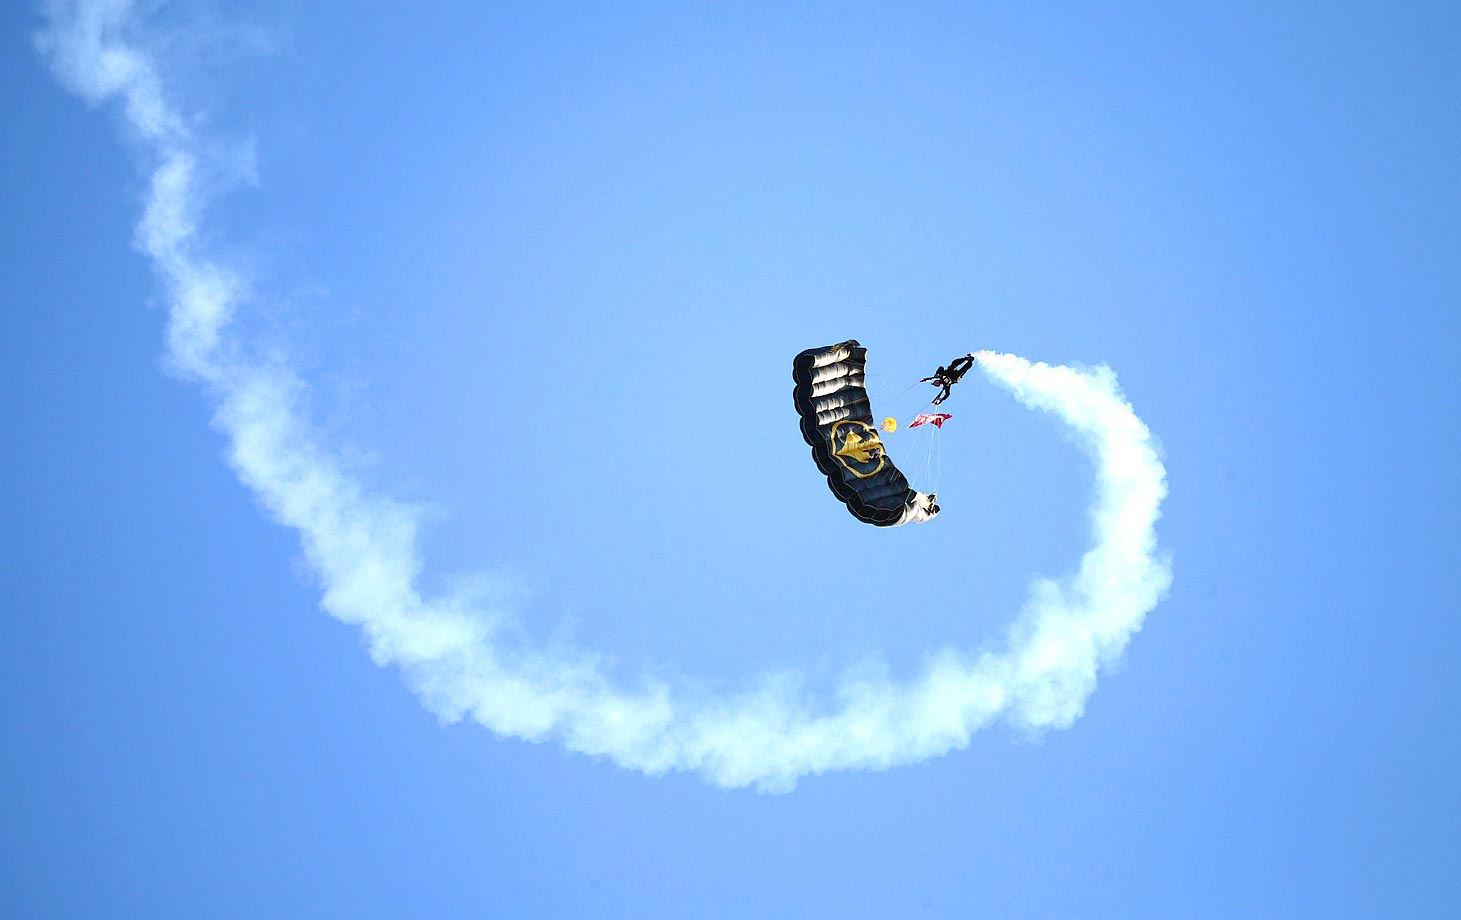 A parachutist enters the stadium before the Mississippi State game at Alabama.